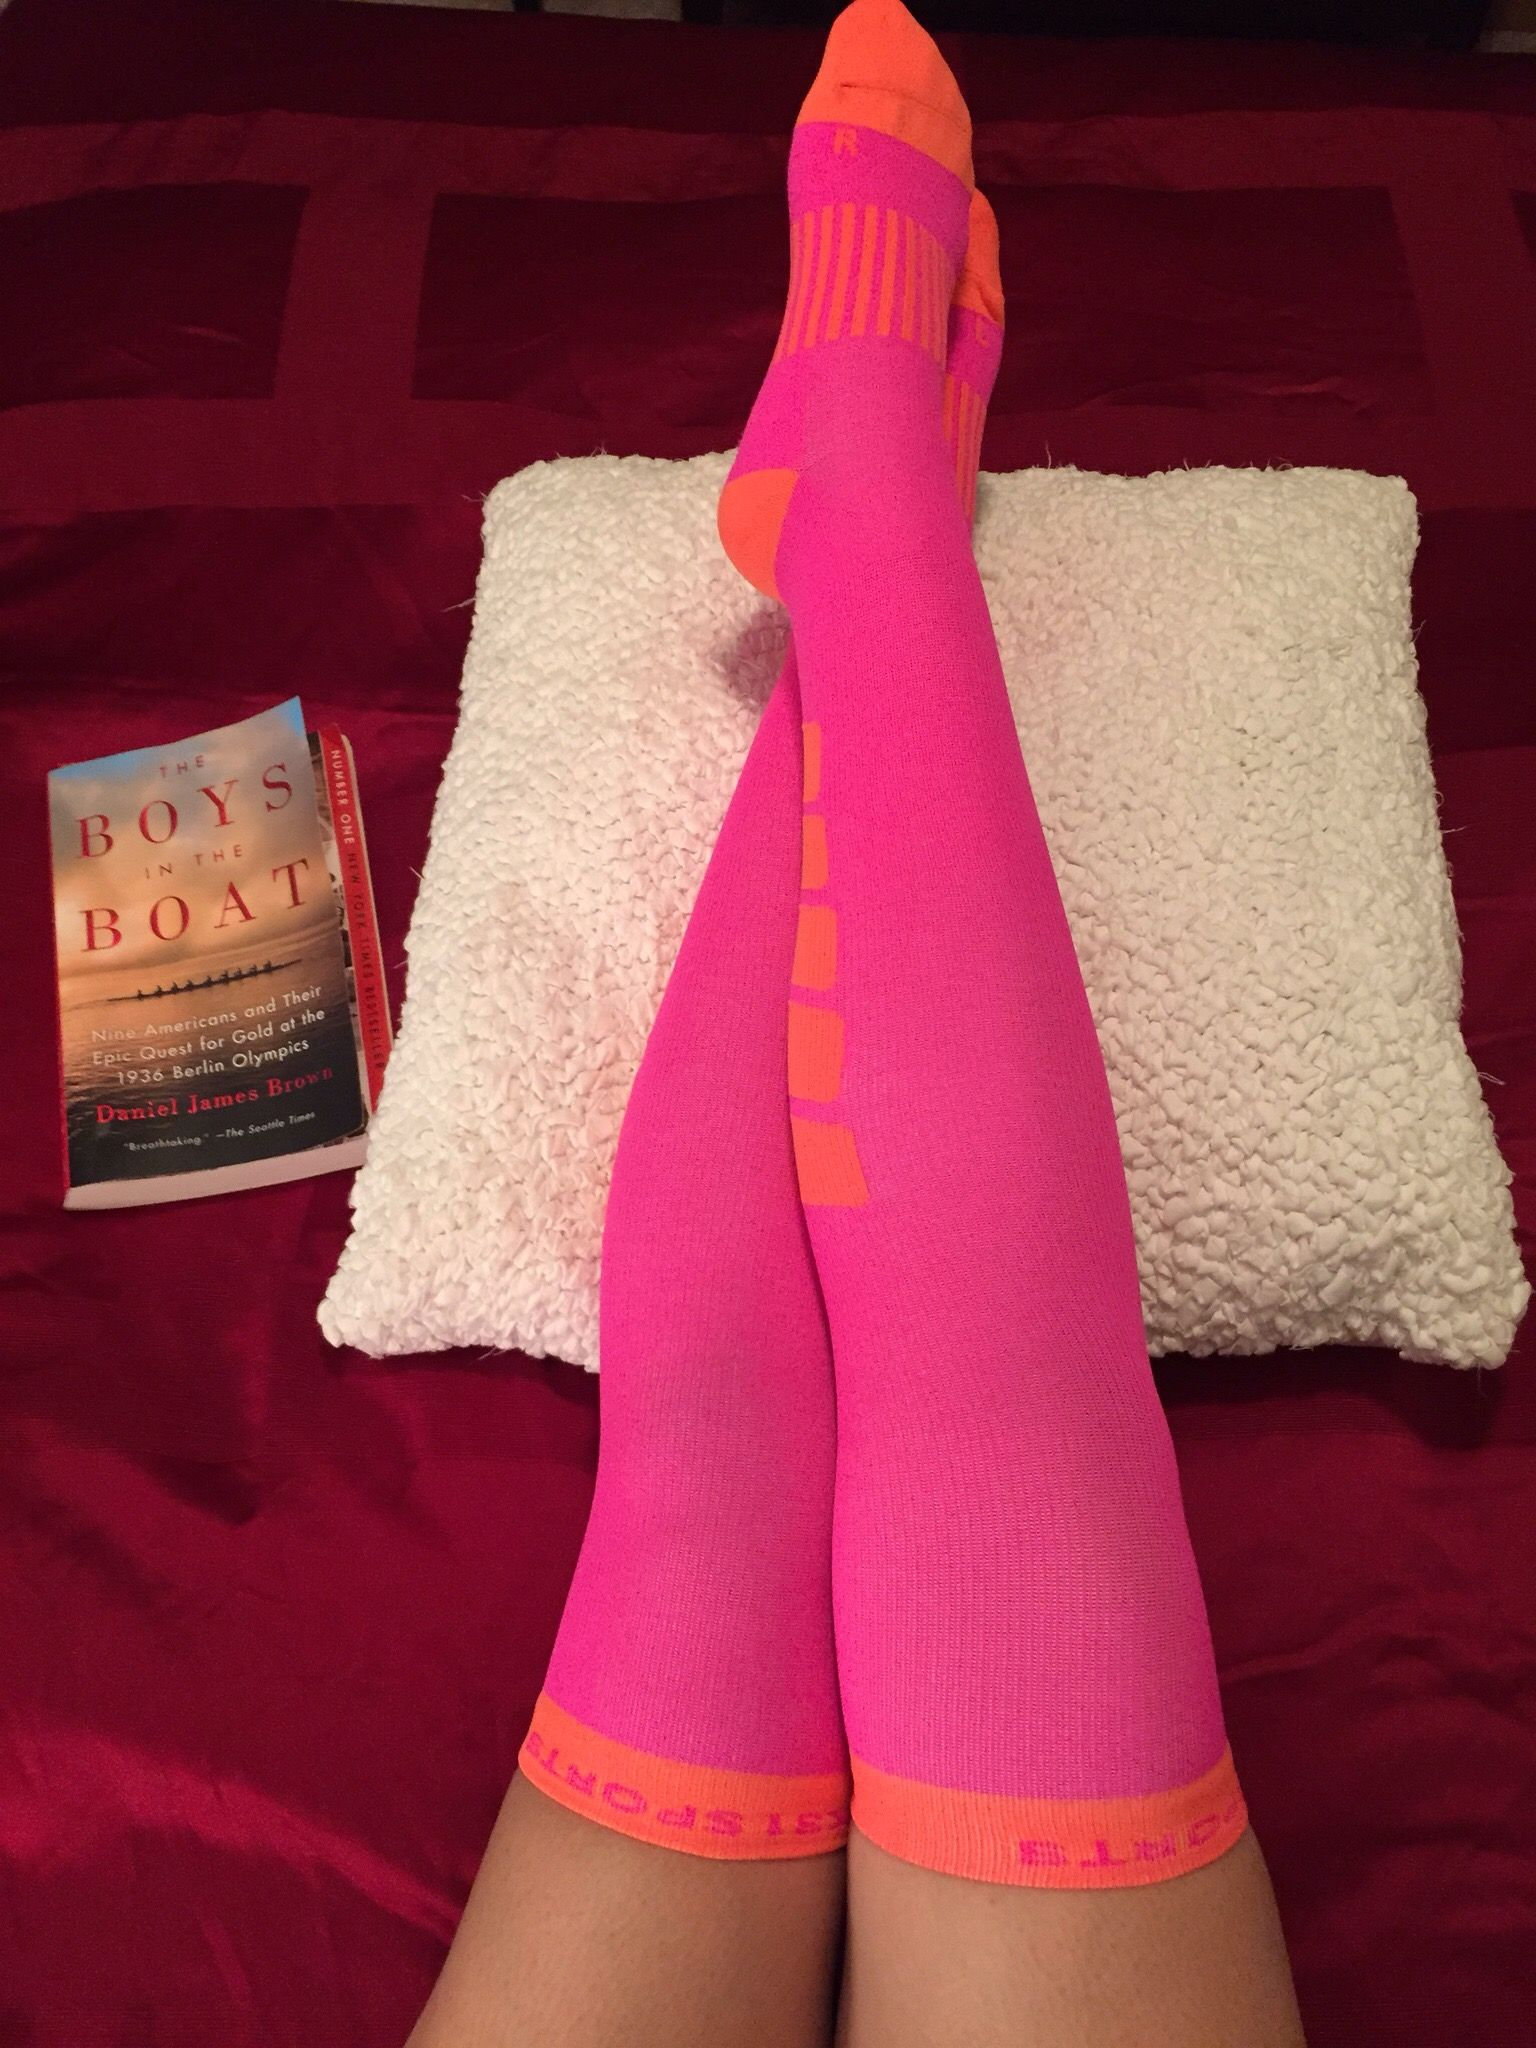 Our Knee High Compression Socks are so soft you'll want to